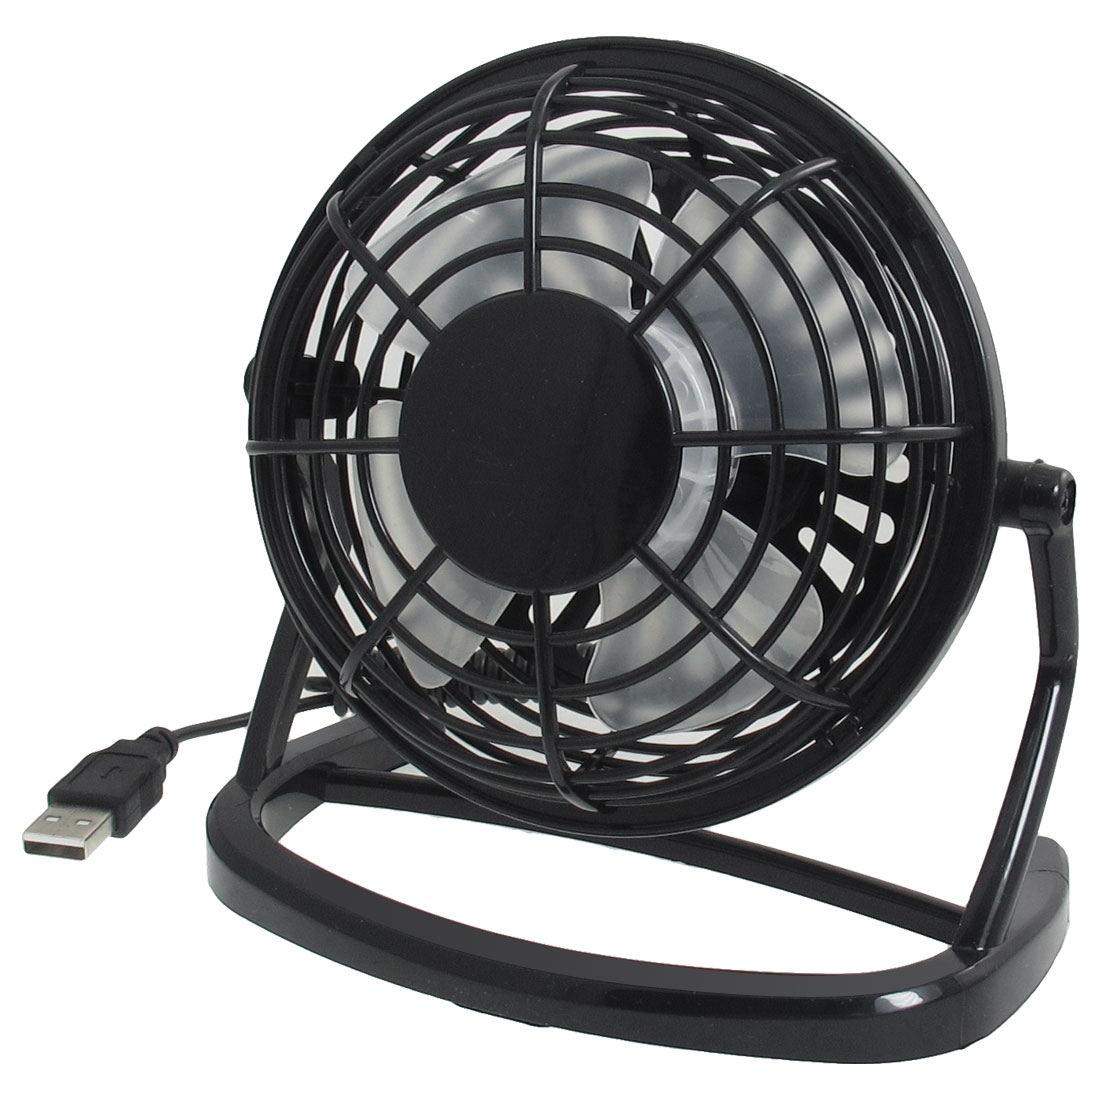 Adjustable Angle Black Plastic USB Mini Desk Fan for Notebook